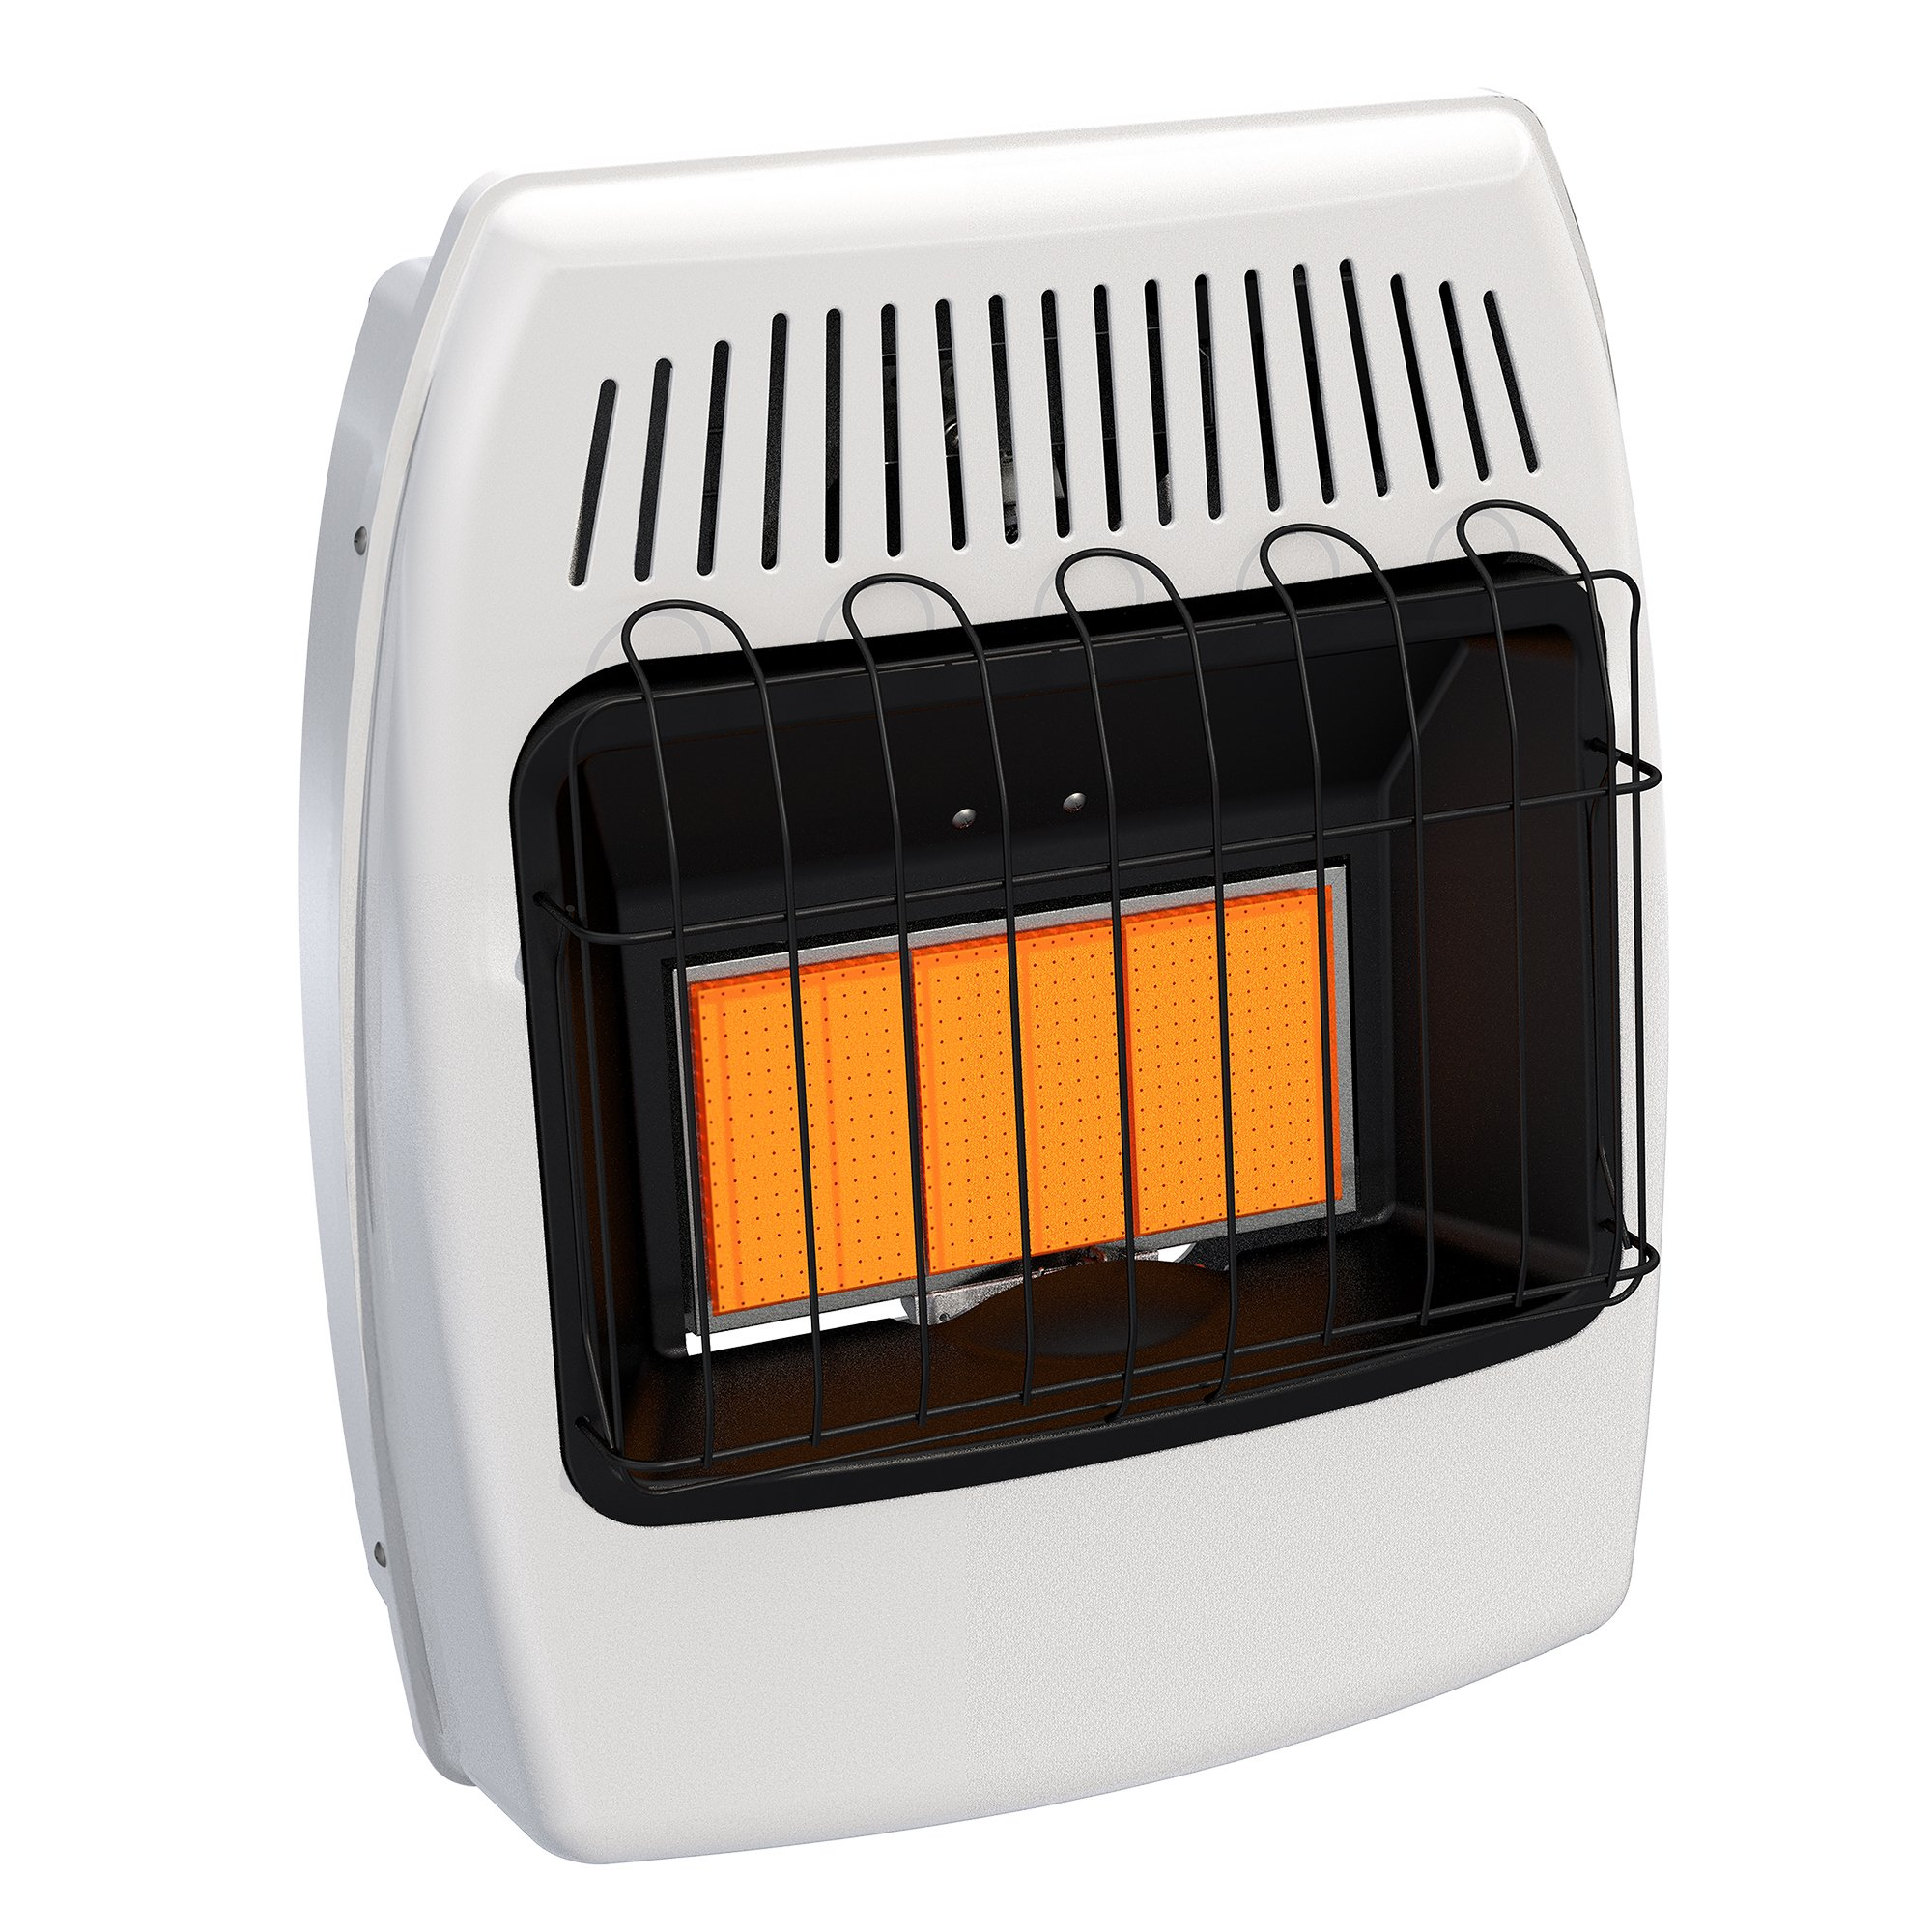 Dyna-Glo IR18NMDG-1 18,000 BTU Natural Gas Infrared Vent Free Wall Heater by Dyna-Glo